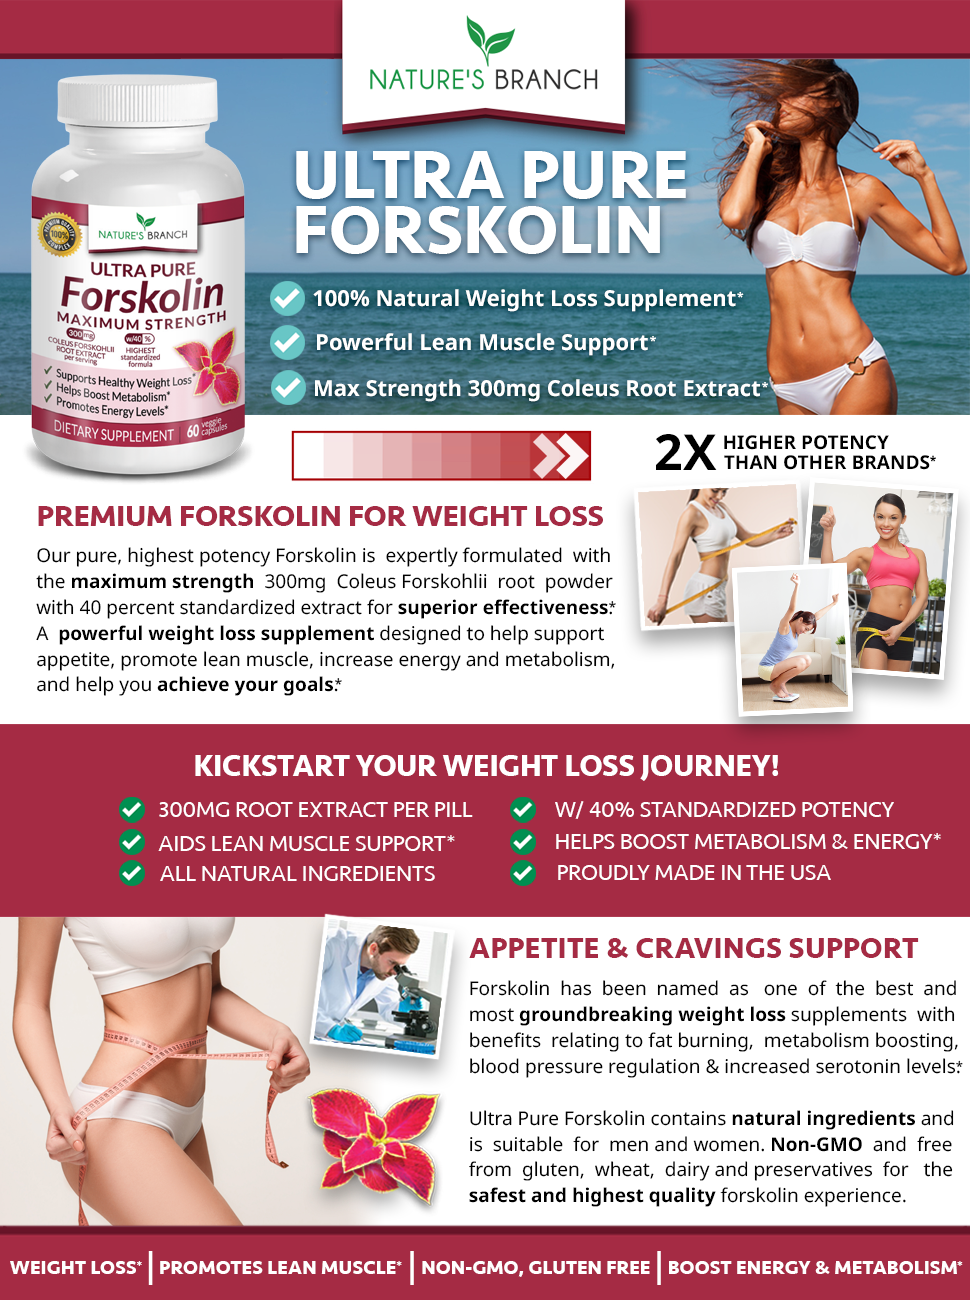 Ultra Pure Forskolin For Weight Loss Extract Supplement md Max Strength Premium Keto Appetite chart